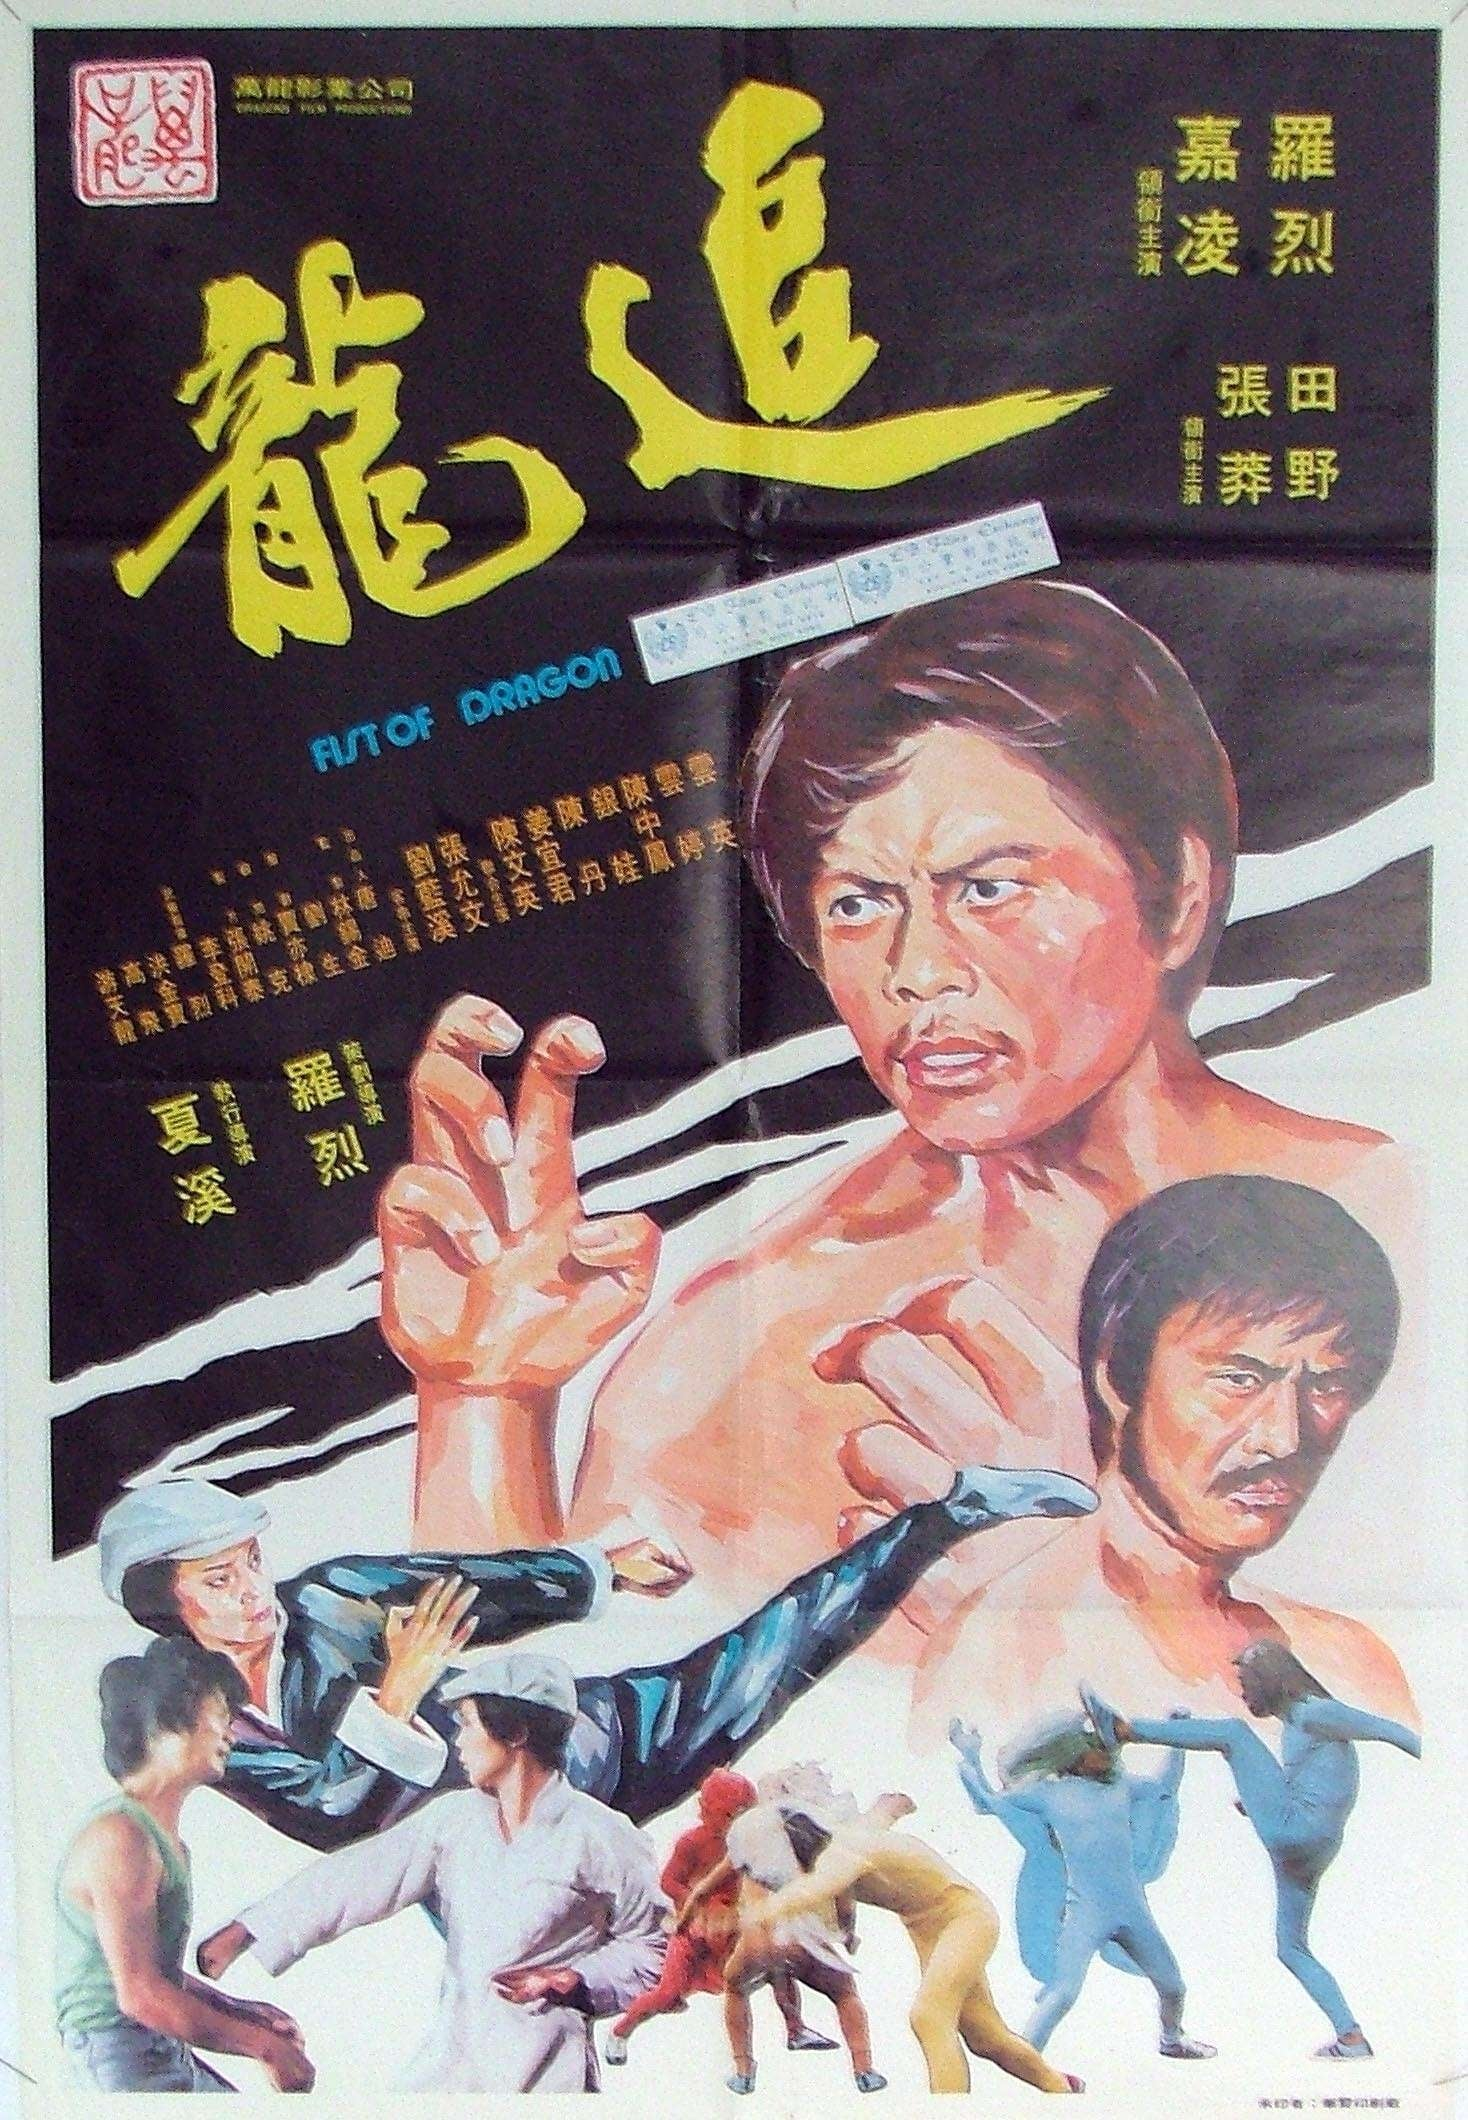 Fist of Dragon (1977)